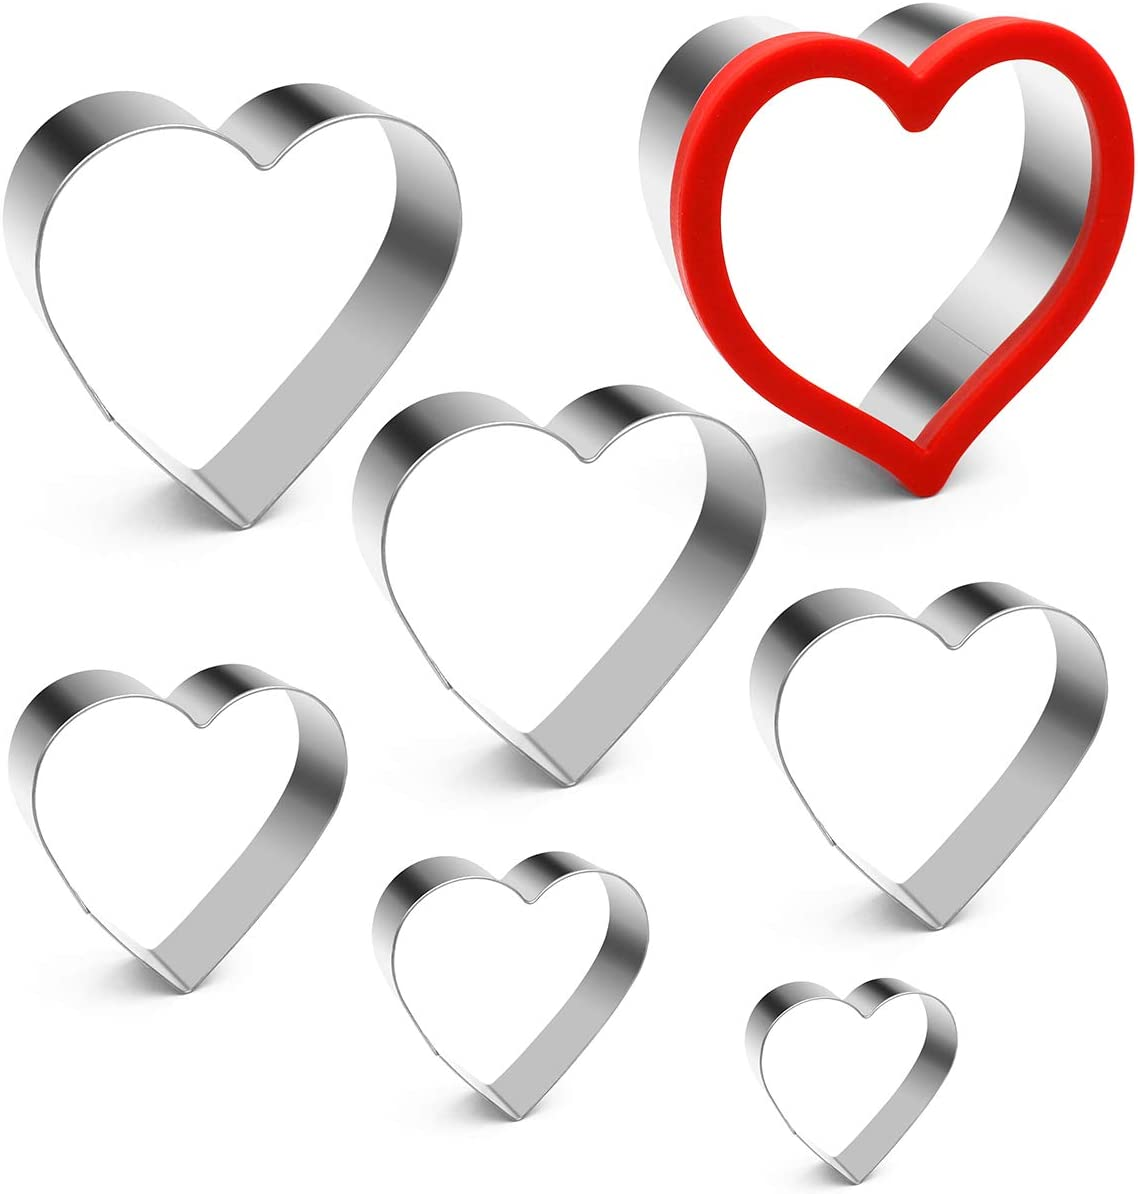 ANPOPO Heart Cookie Cutters for Anniversary, Bridal, Engagement and Valentine - 7 Piece Stainless Steel Heart Shapes 1.57in, 1.97in, 2.36in, 2.76in, 3.15in, 3.54in, 3.94in